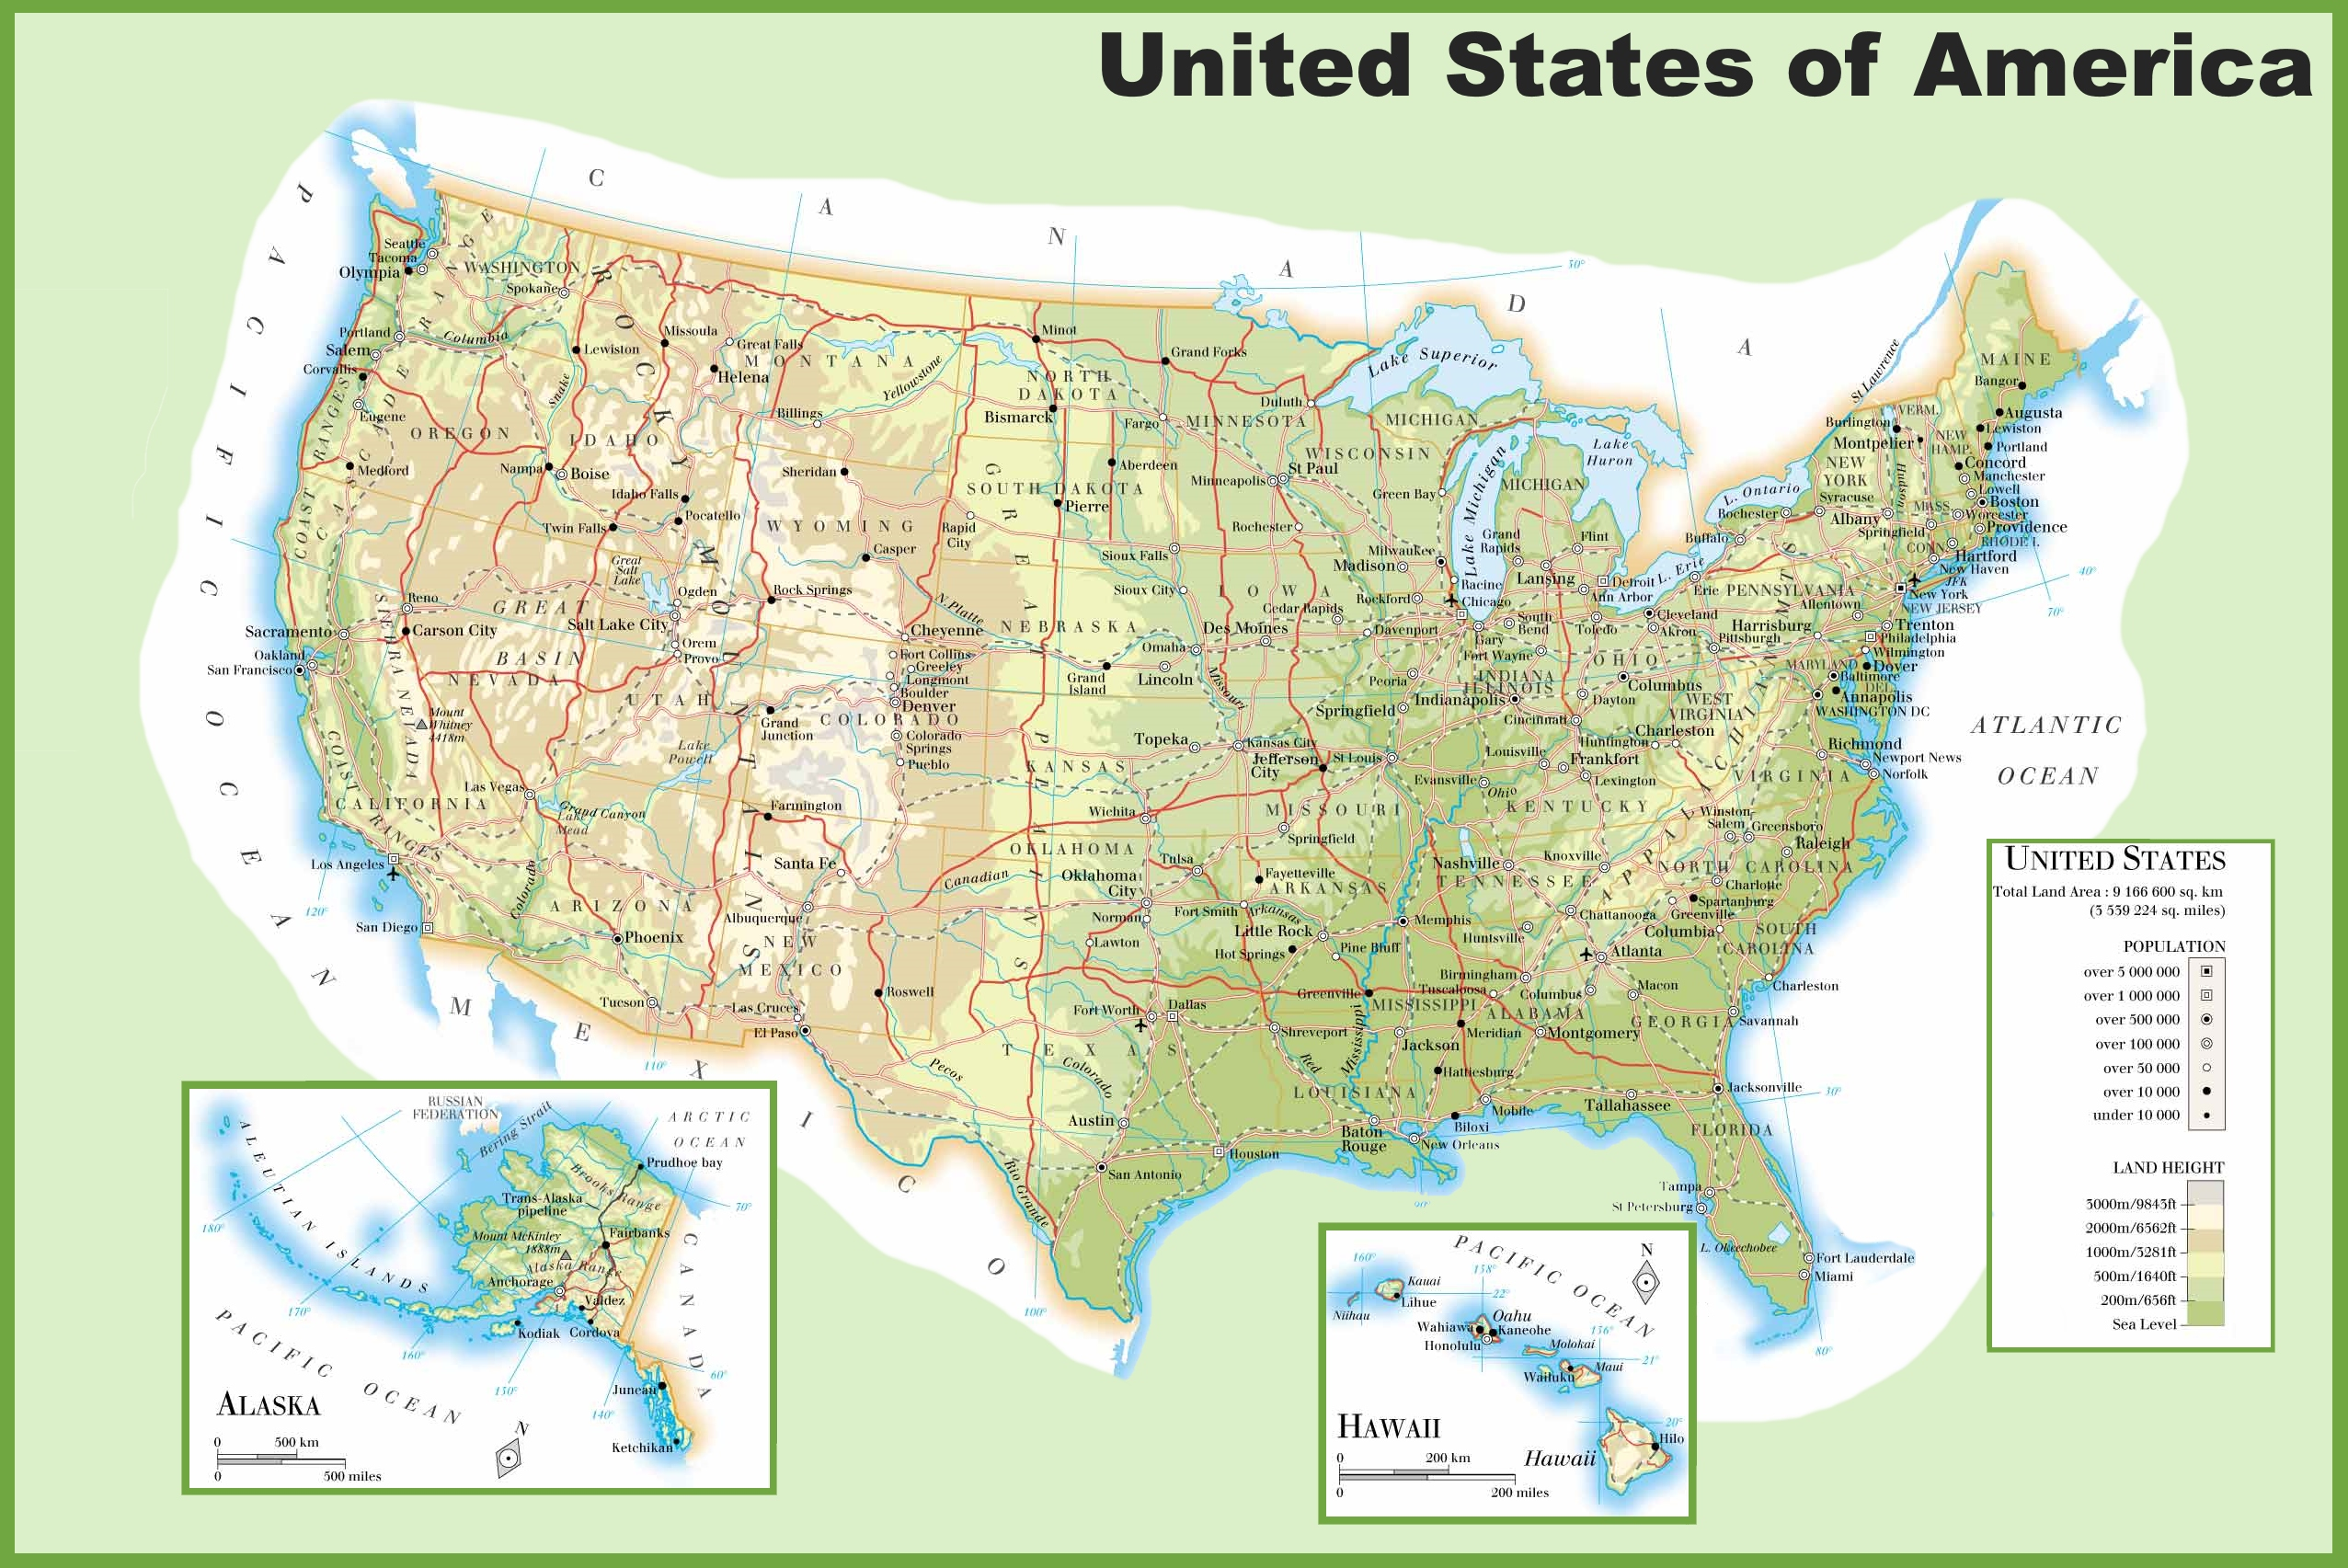 United States Of America Physical Features Map